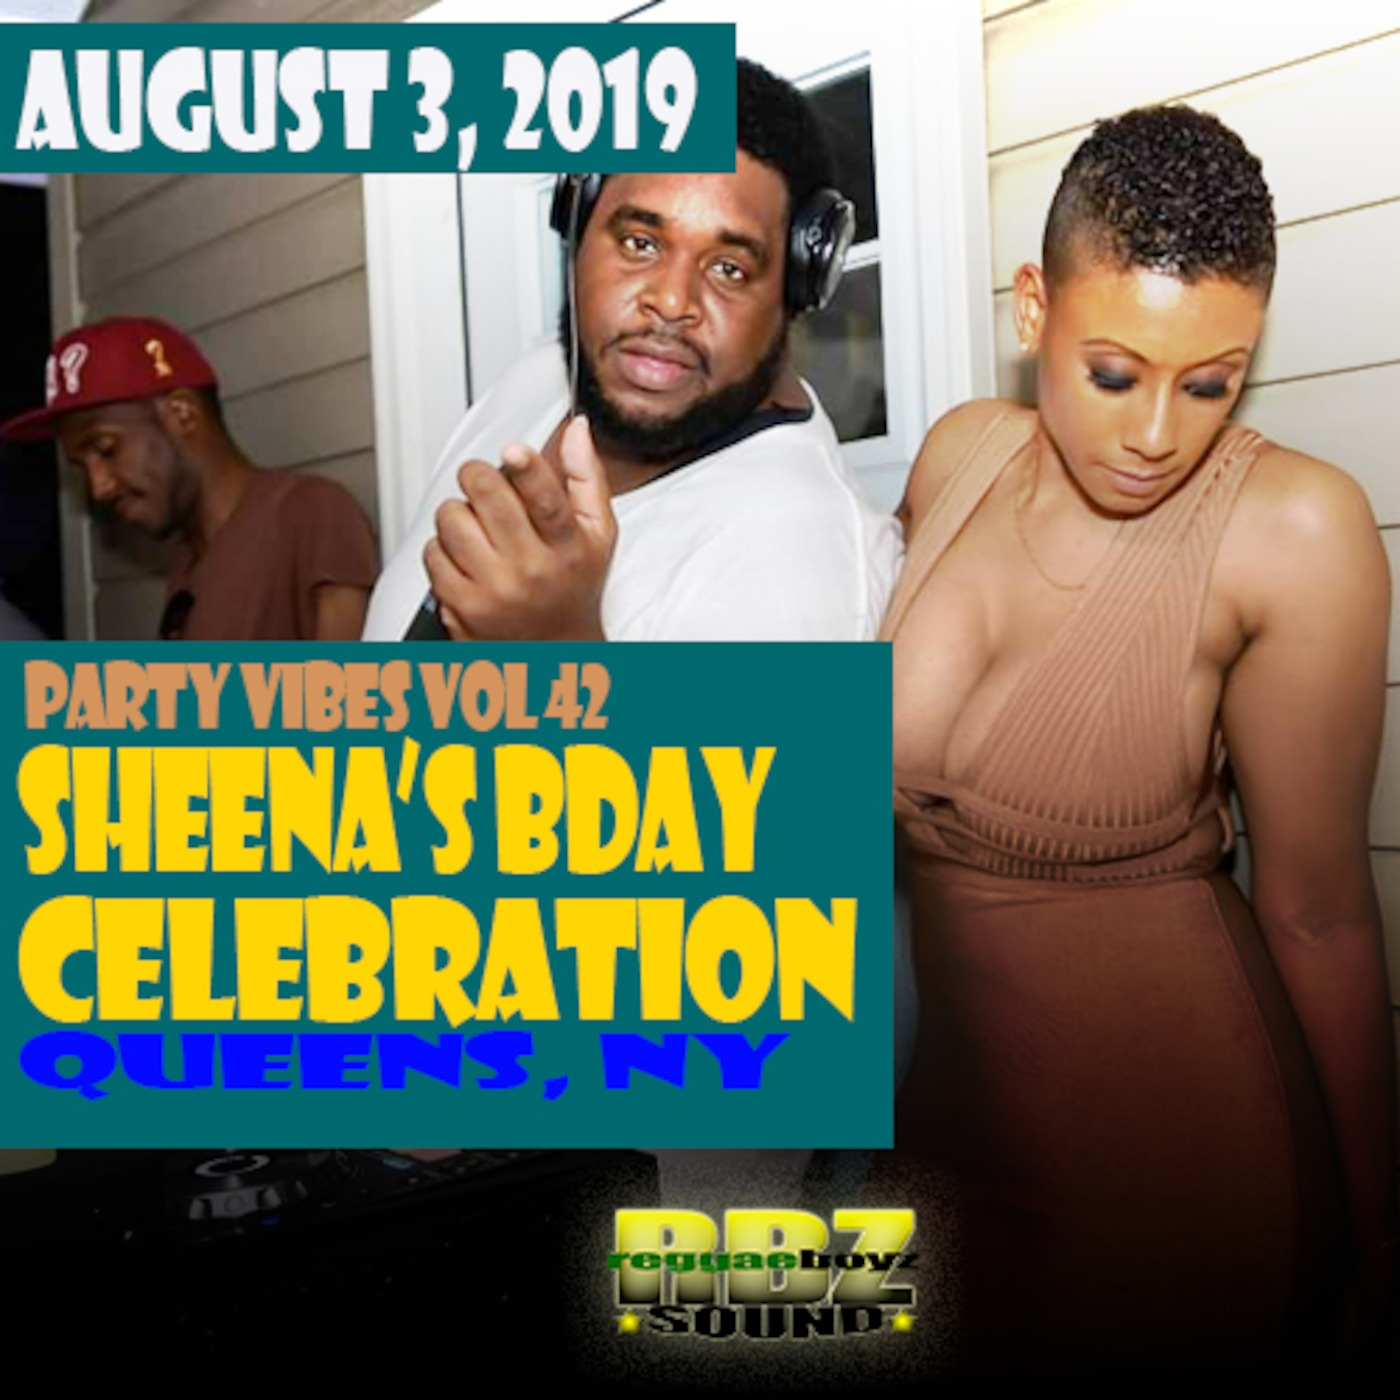 PARTY VIBES 42: SHEENA BDAY BBQ 8/3/2019 REGGAEBOYZ SOUND podcast